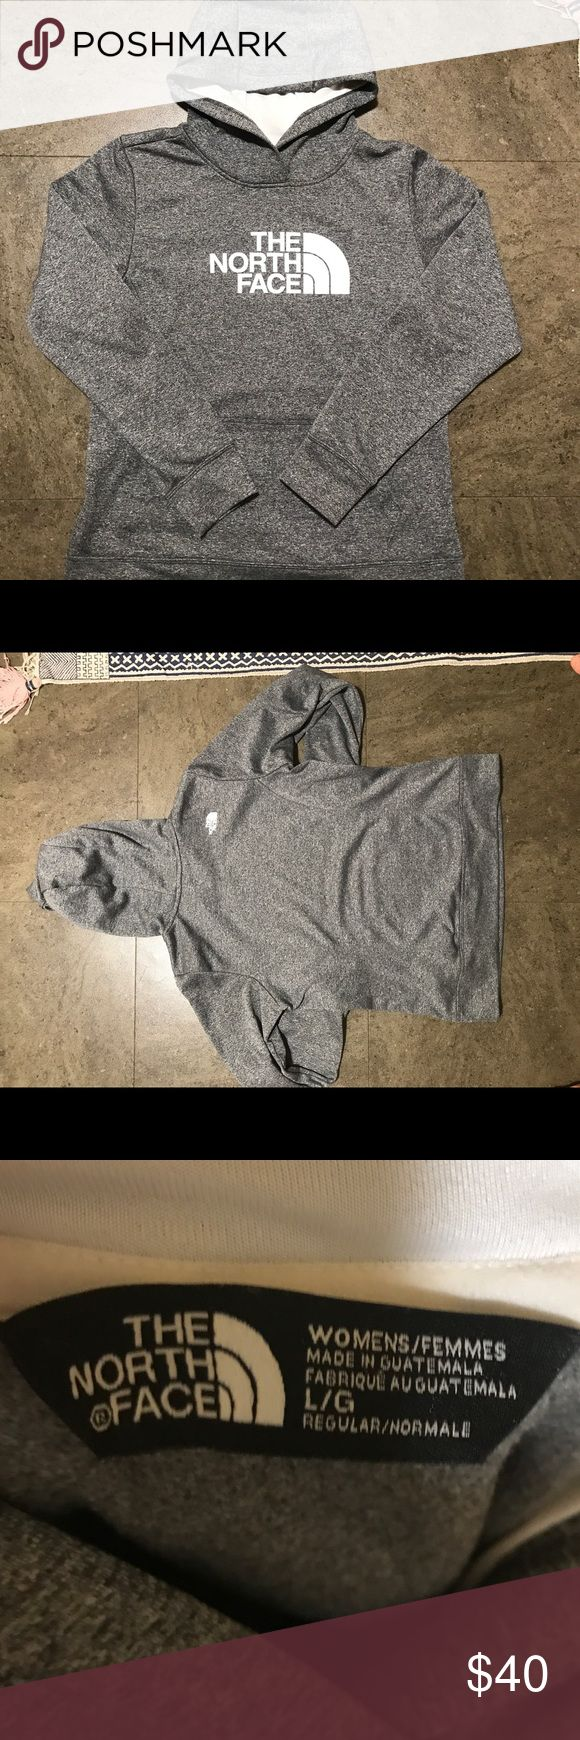 Grey north face hoodie Grey women's north face hoodie. Size large but fits like a small/medium. Great condition. North Face Tops Sweatshirts & Hoodies